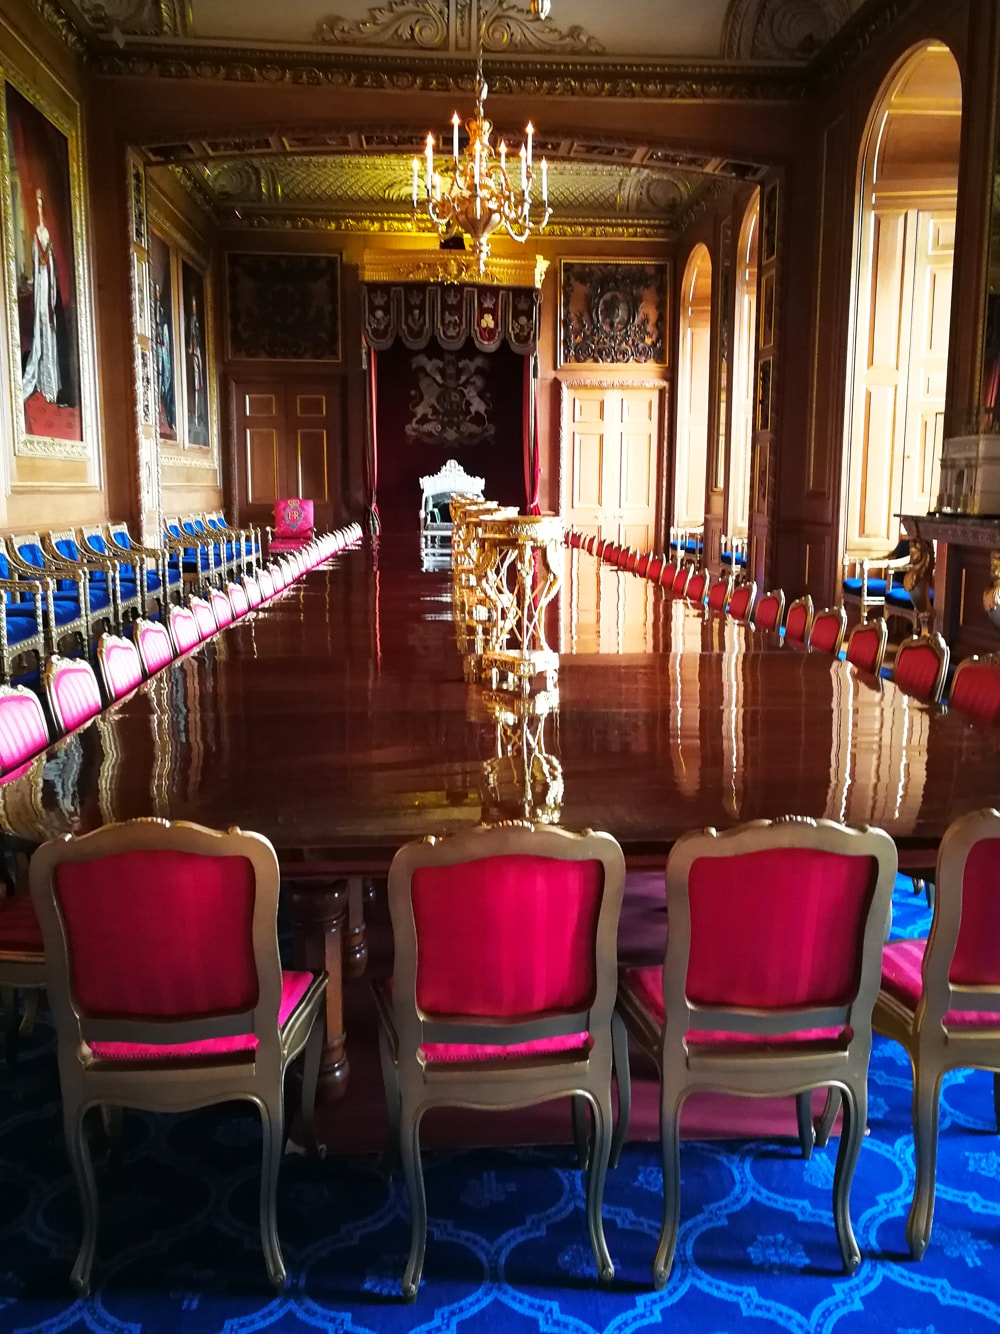 Dining Room of Windsor Castle